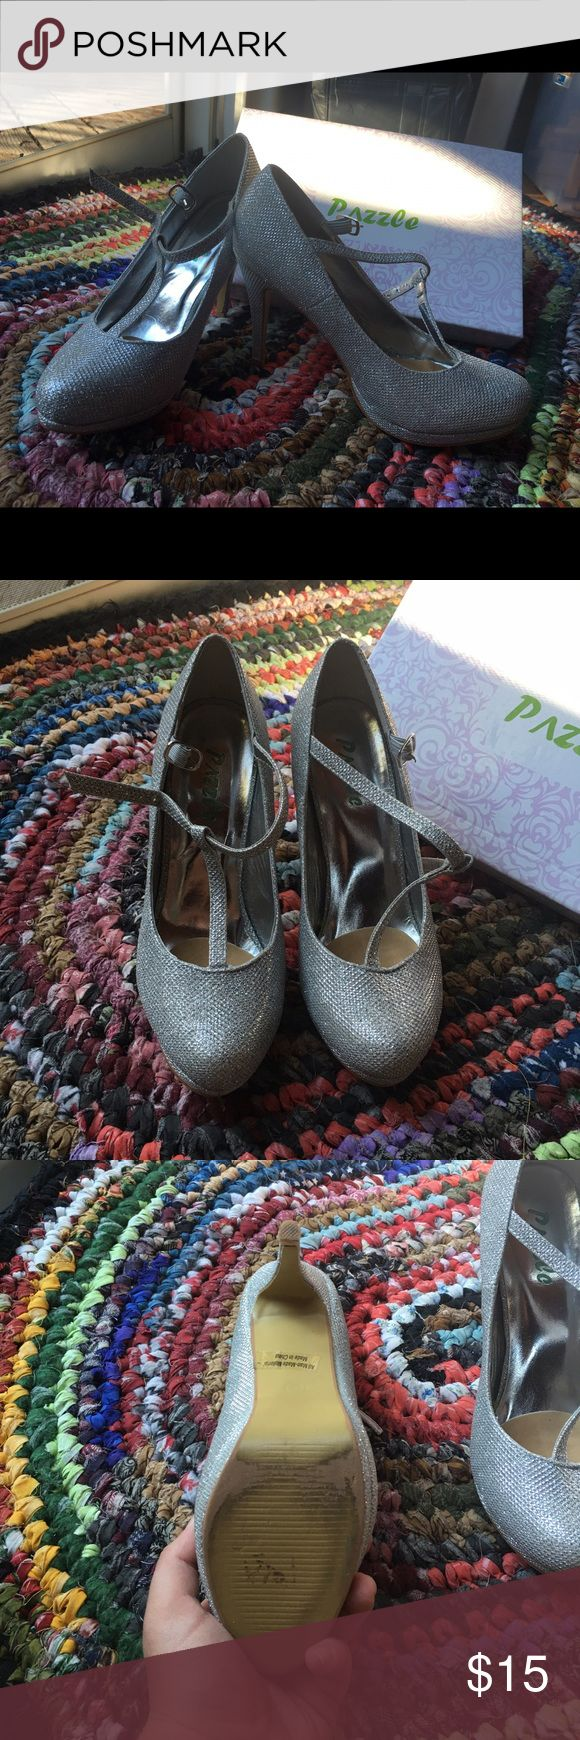 Silver Strappy Heels Perfect for homecoming, prom, and weddings! Cute silver heels with T-strap around ankle. Like new condition, only worn once! Still in box, also has extra pieces for the heel (I can post pictures upon request). Insole is removable, never used, but added to make shoes more comfortable. Pazzle Shoes Heels